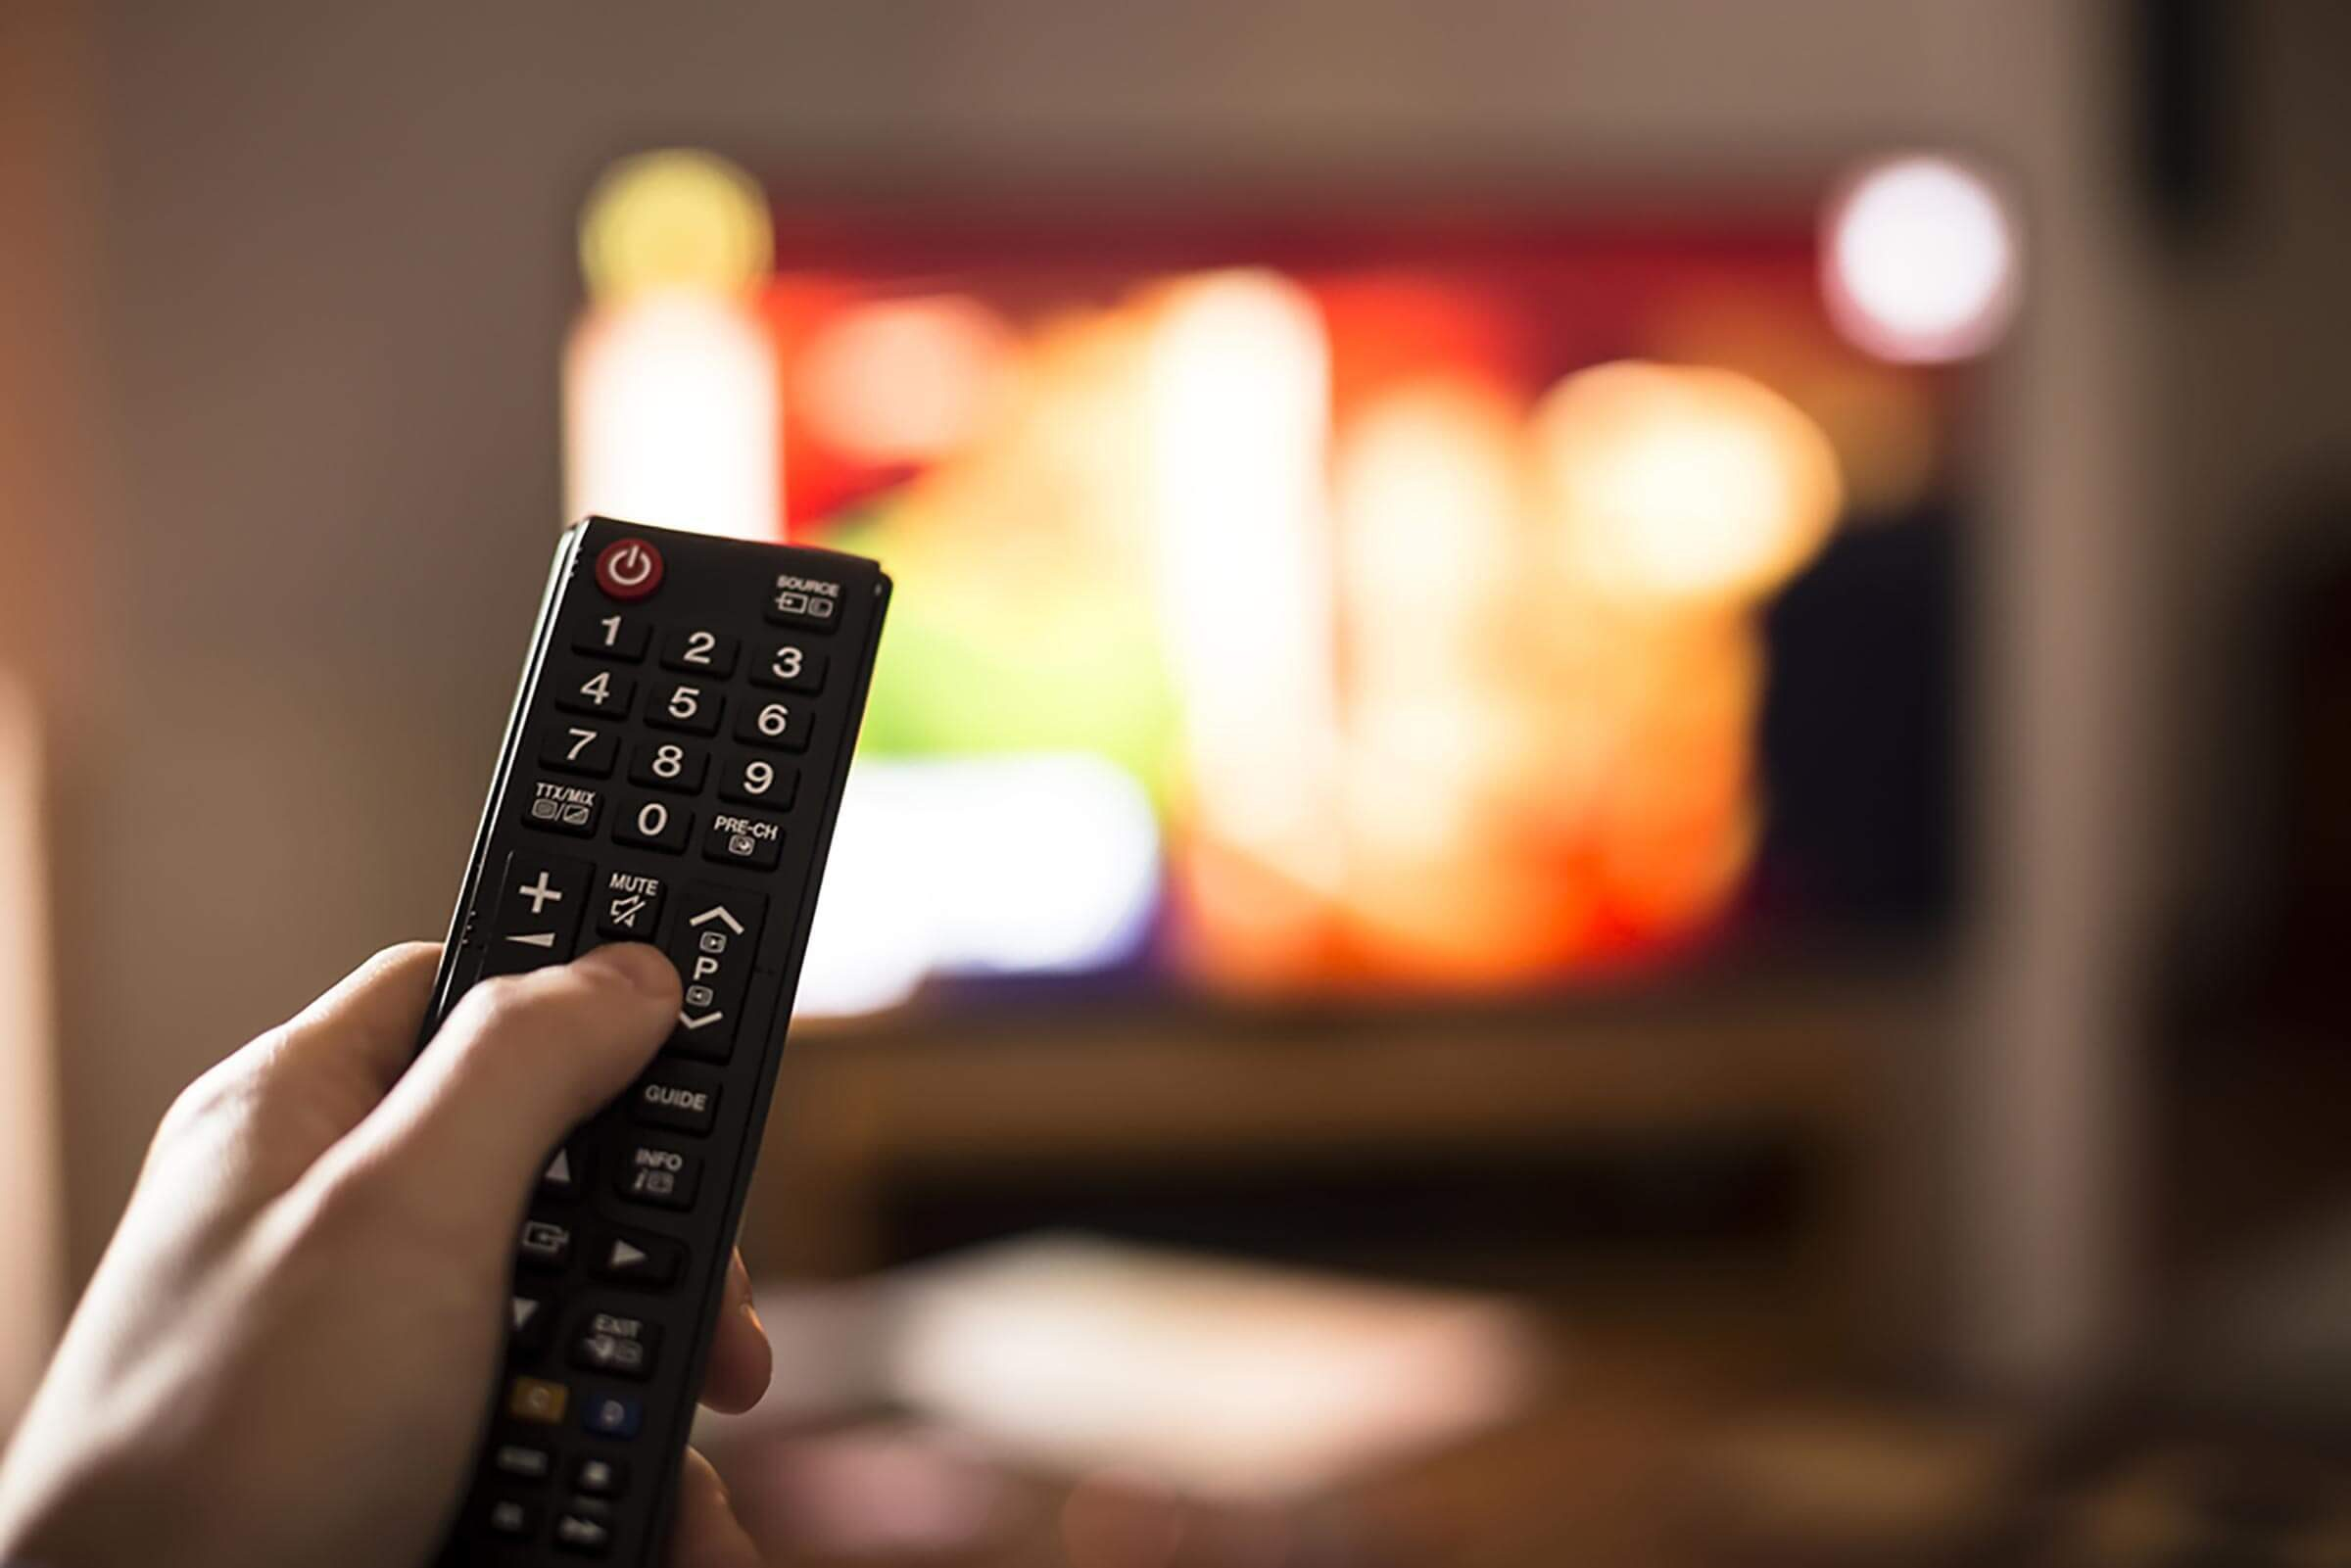 via0.com - The Germy Facts About Your TV Remote